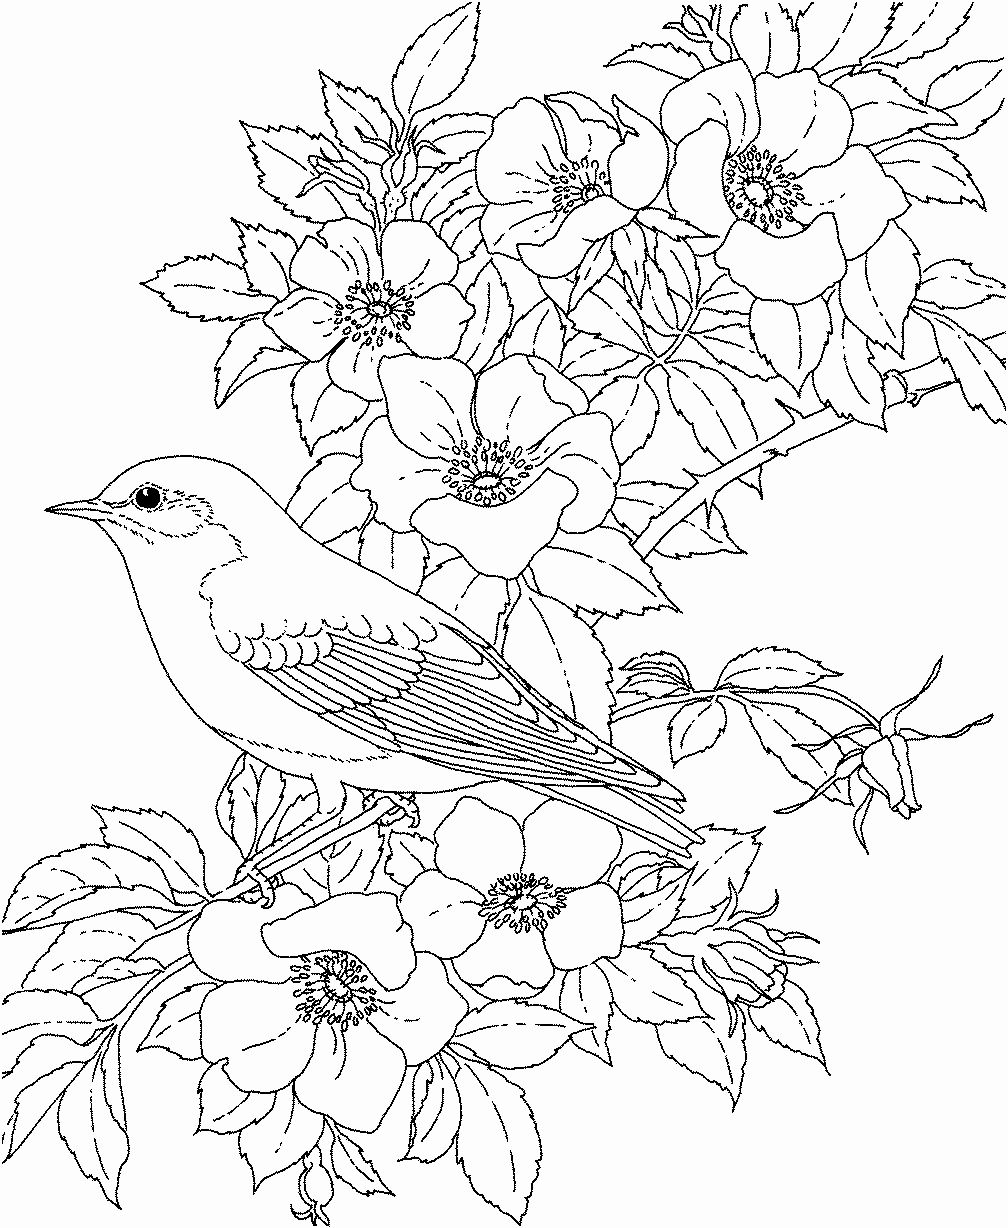 Coloring Flowers With Copics New Coloring Pages Birds For Adults Bird Coloring Pages Animal Coloring Pages Flower Coloring Pages